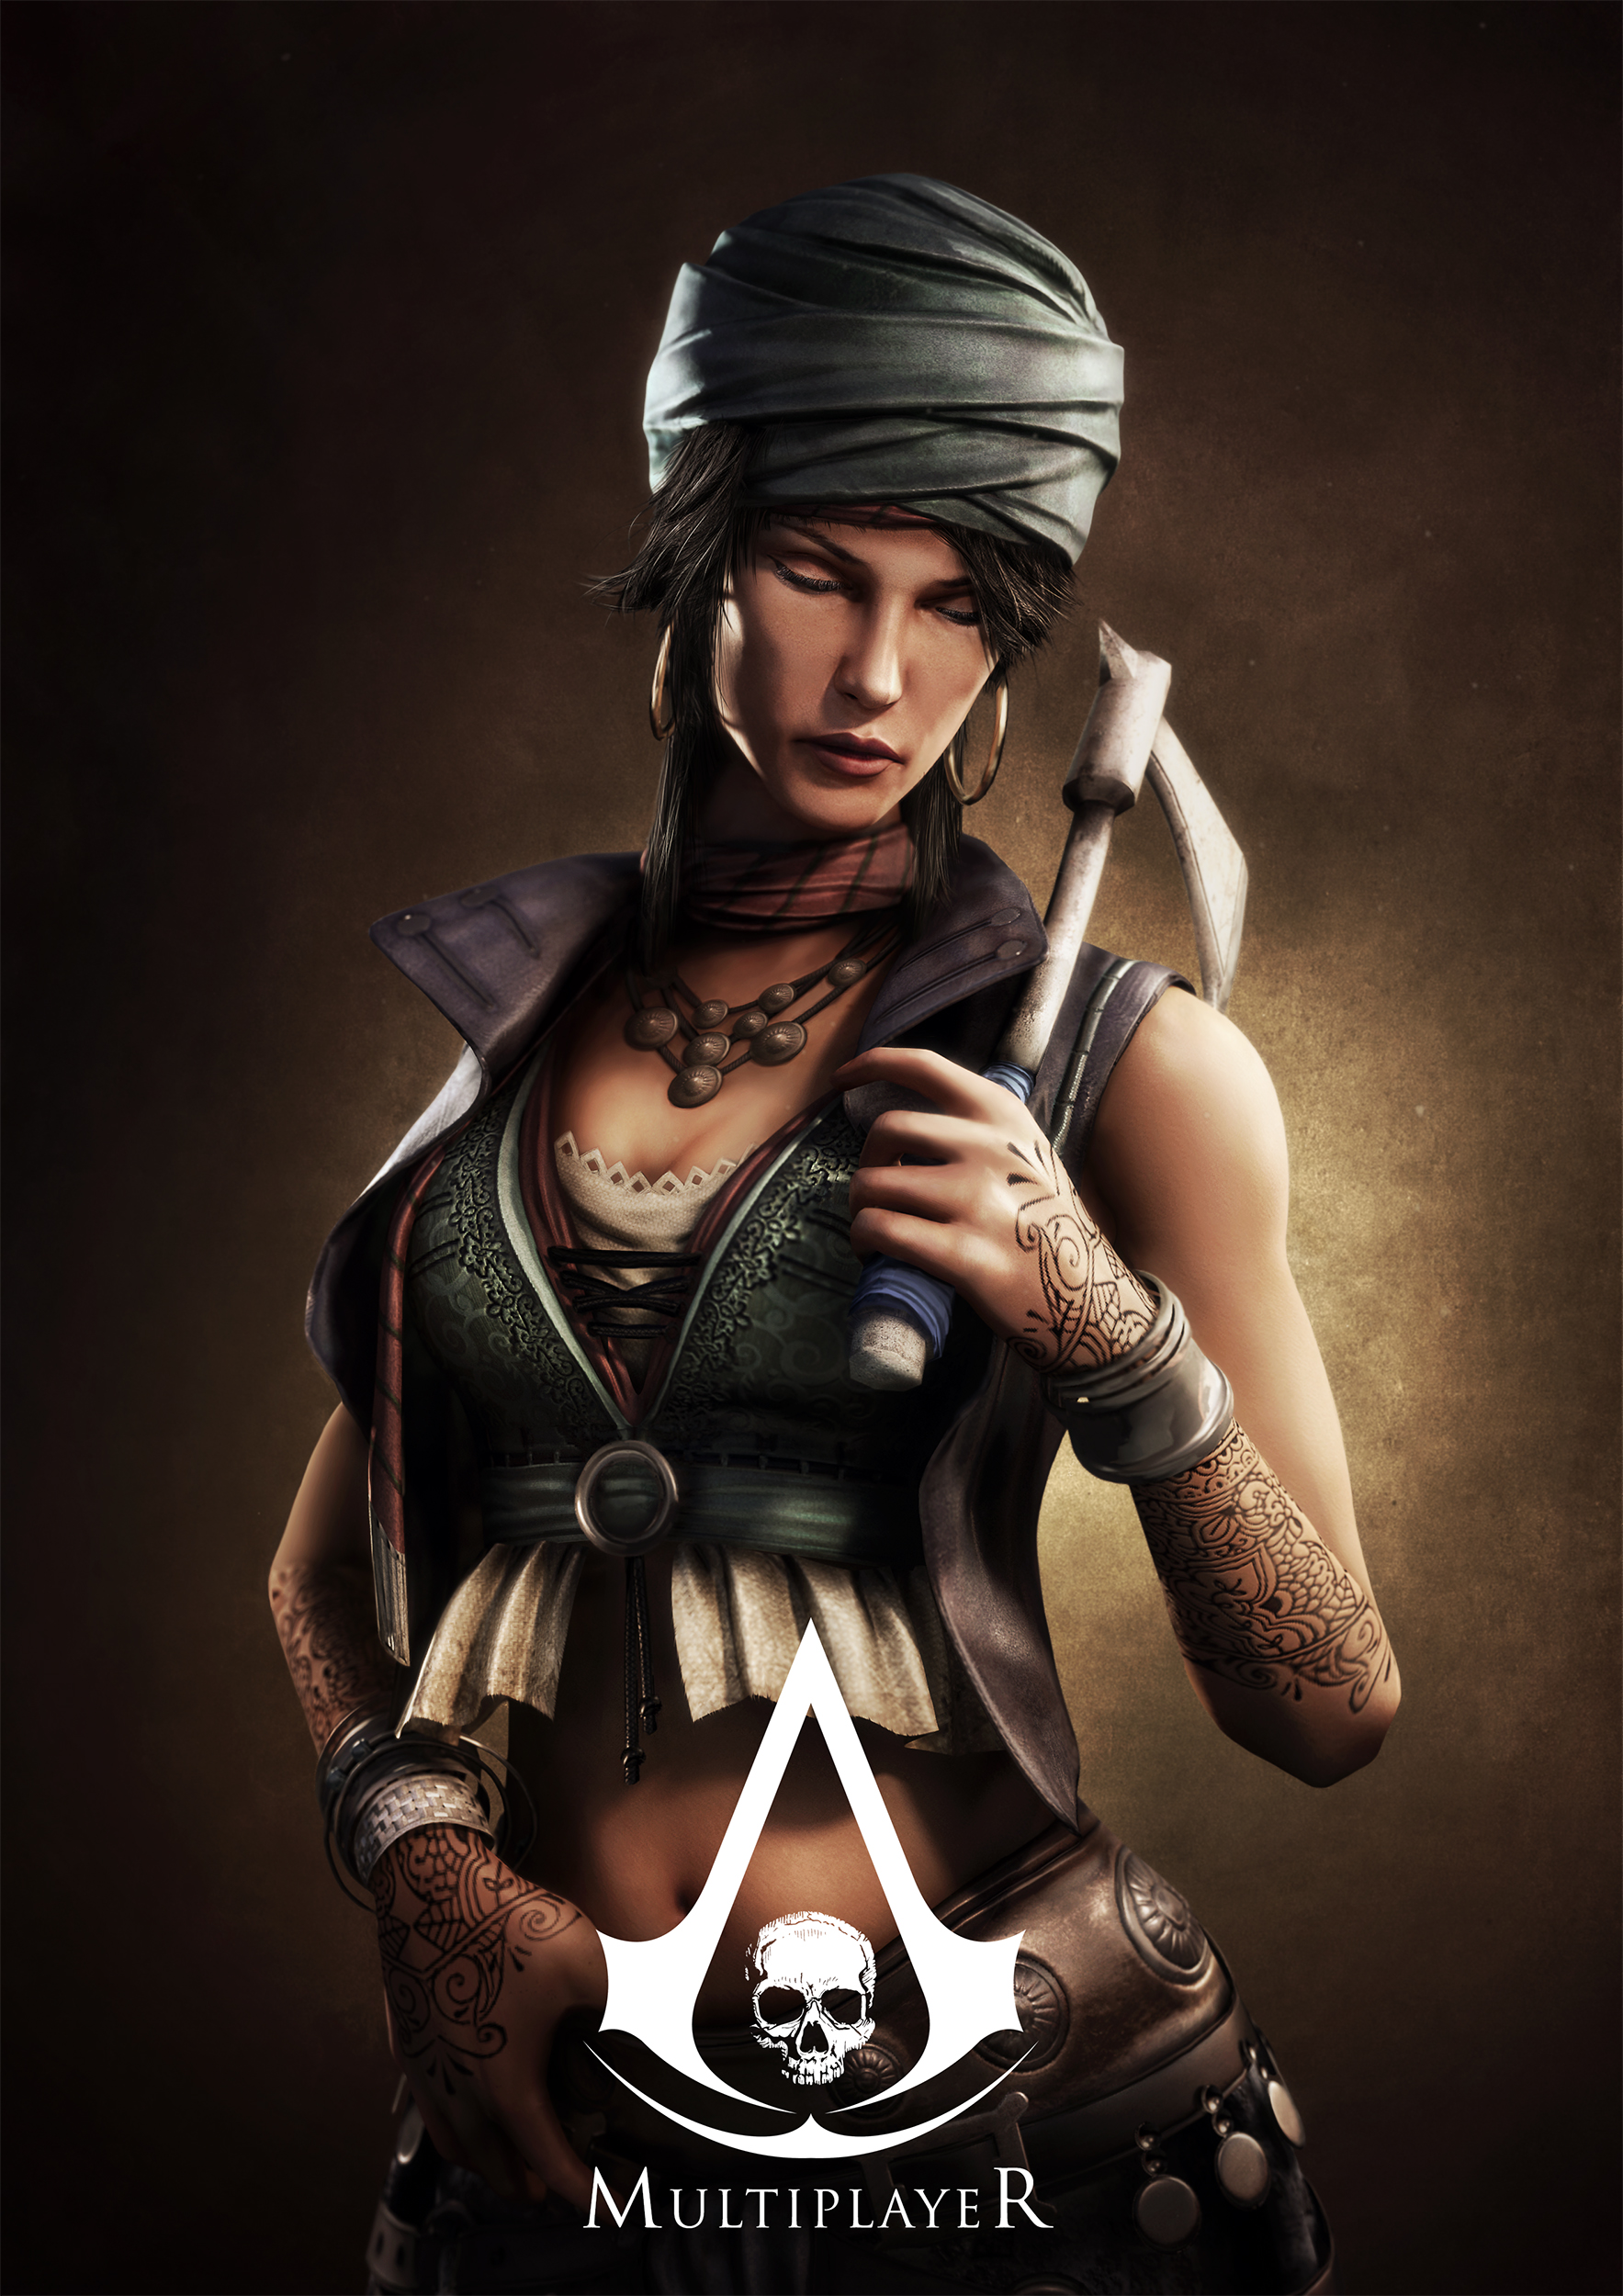 Lady black from assassin's creed 4 online  naked image